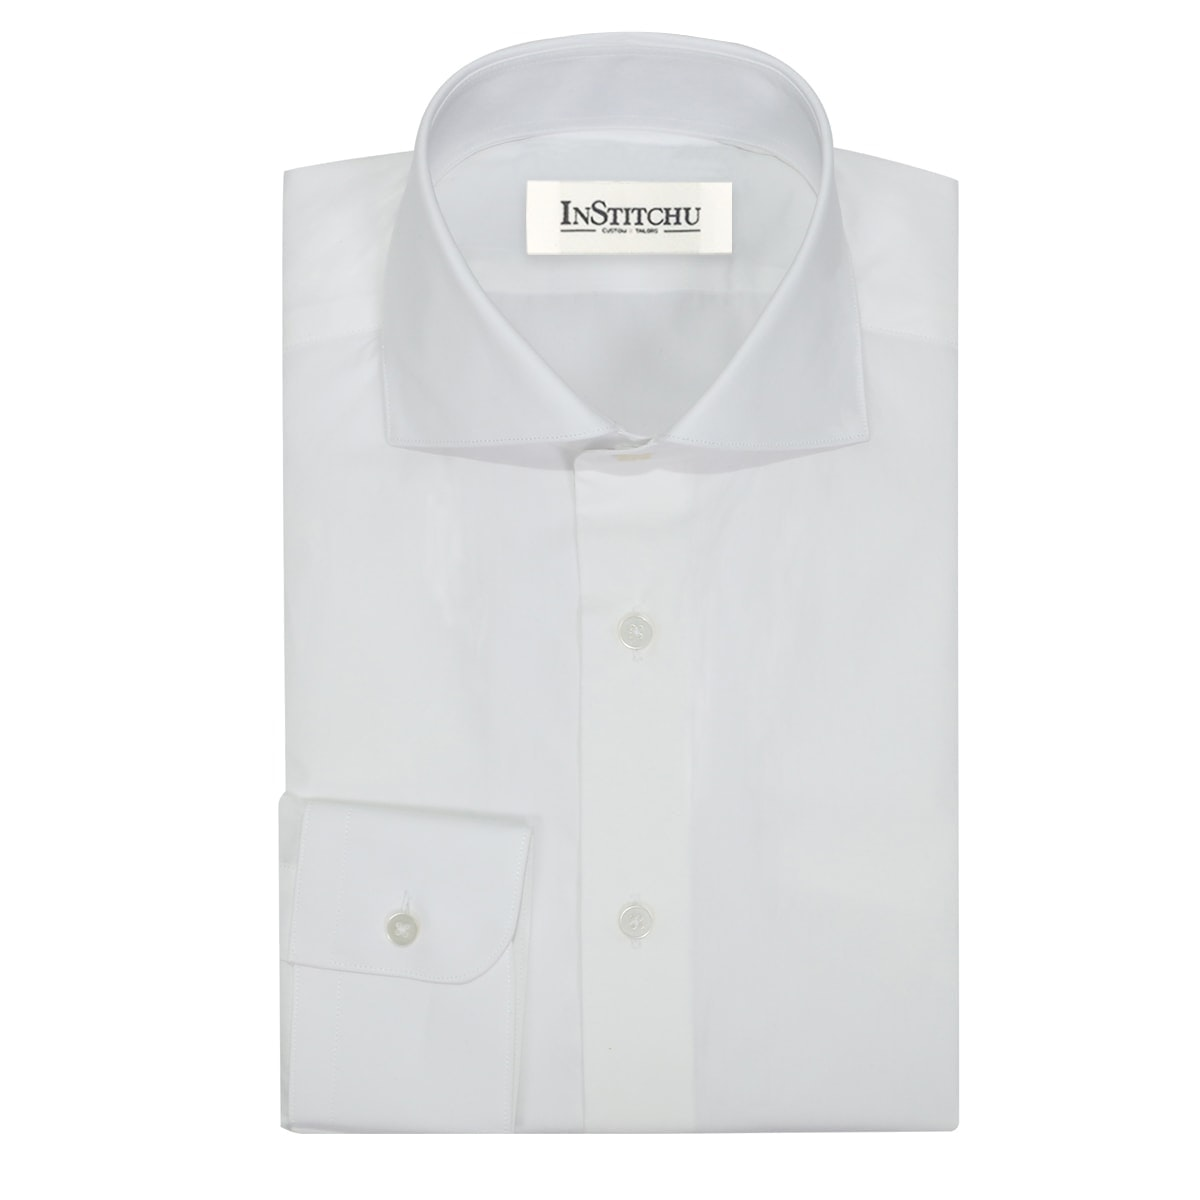 InStitchu Collection The Baudin White Shirt